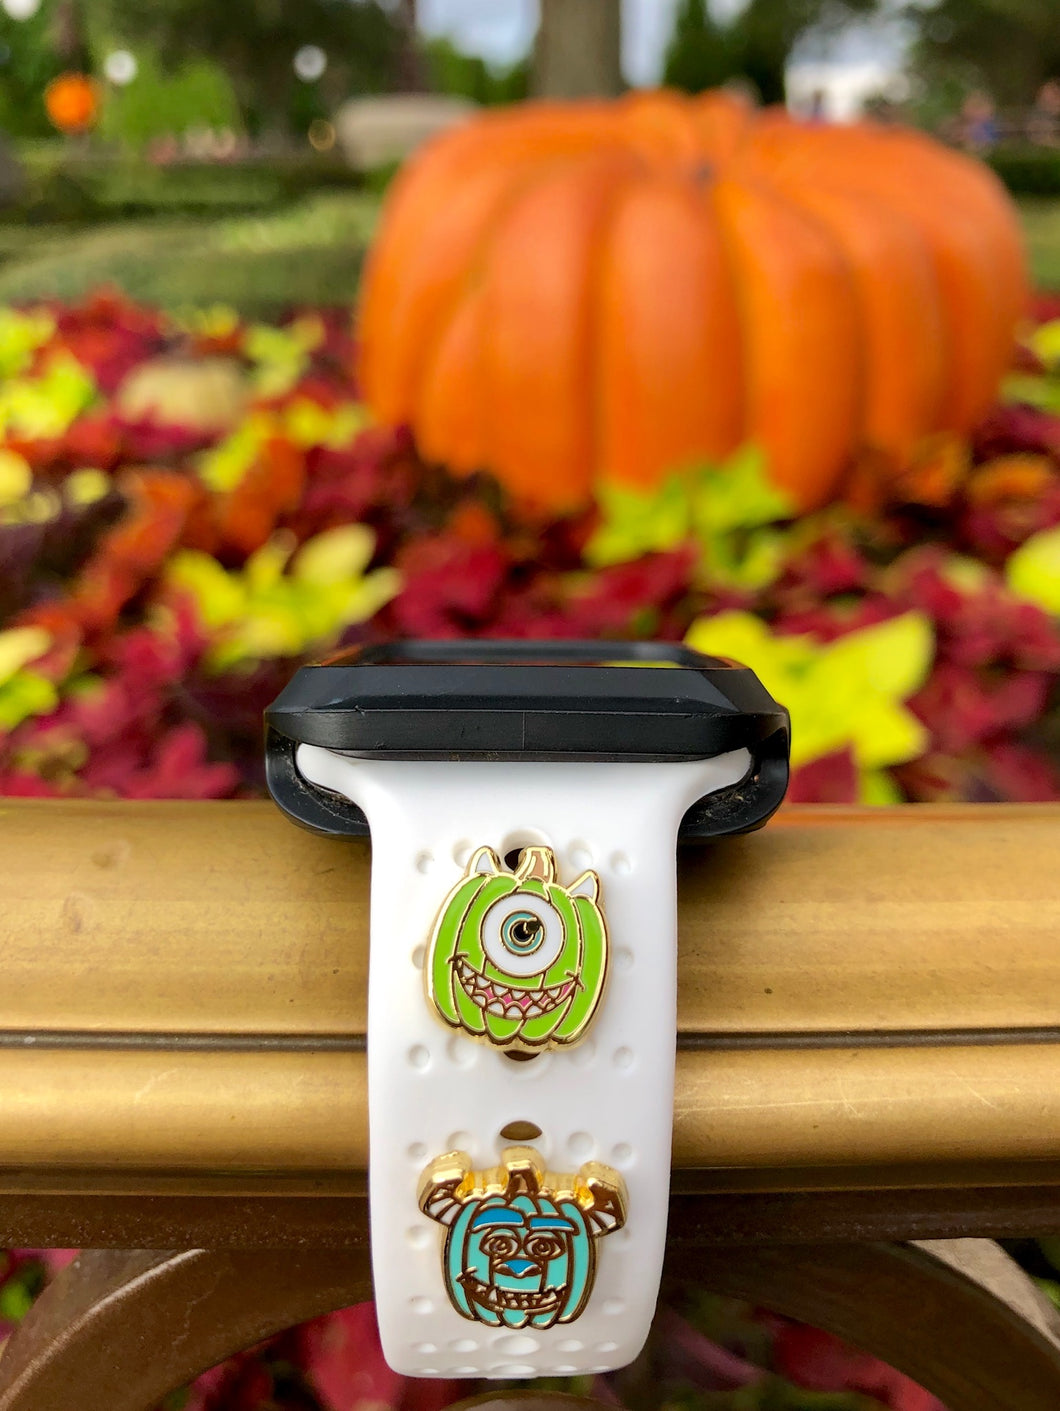 Mike Wazowski and Sully Pumpkin Watch Band Charms